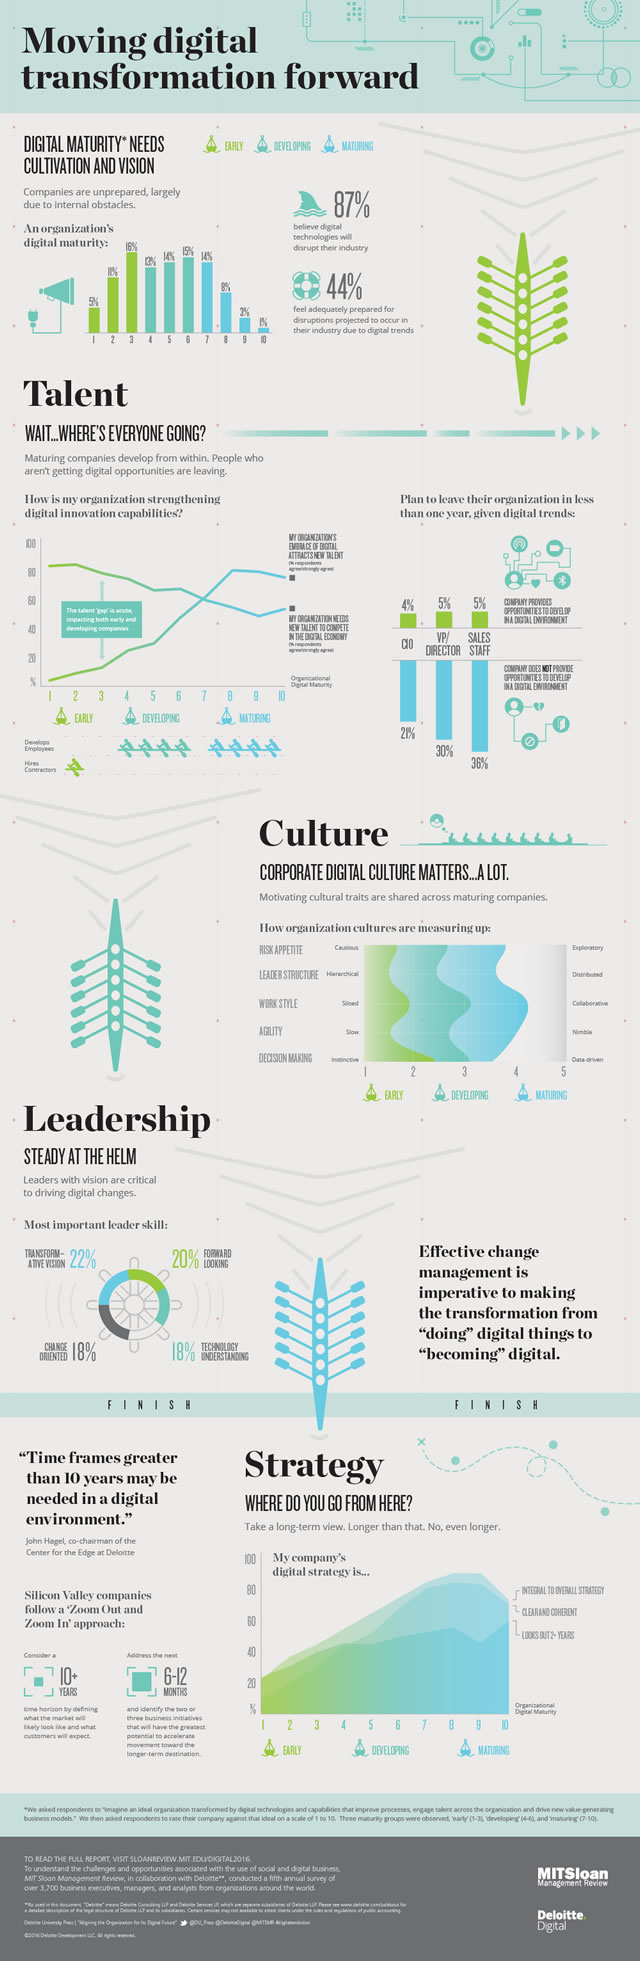 Digital transformation strategy - aligning the organization for its digital future - infographic Deloitte University Press 2016